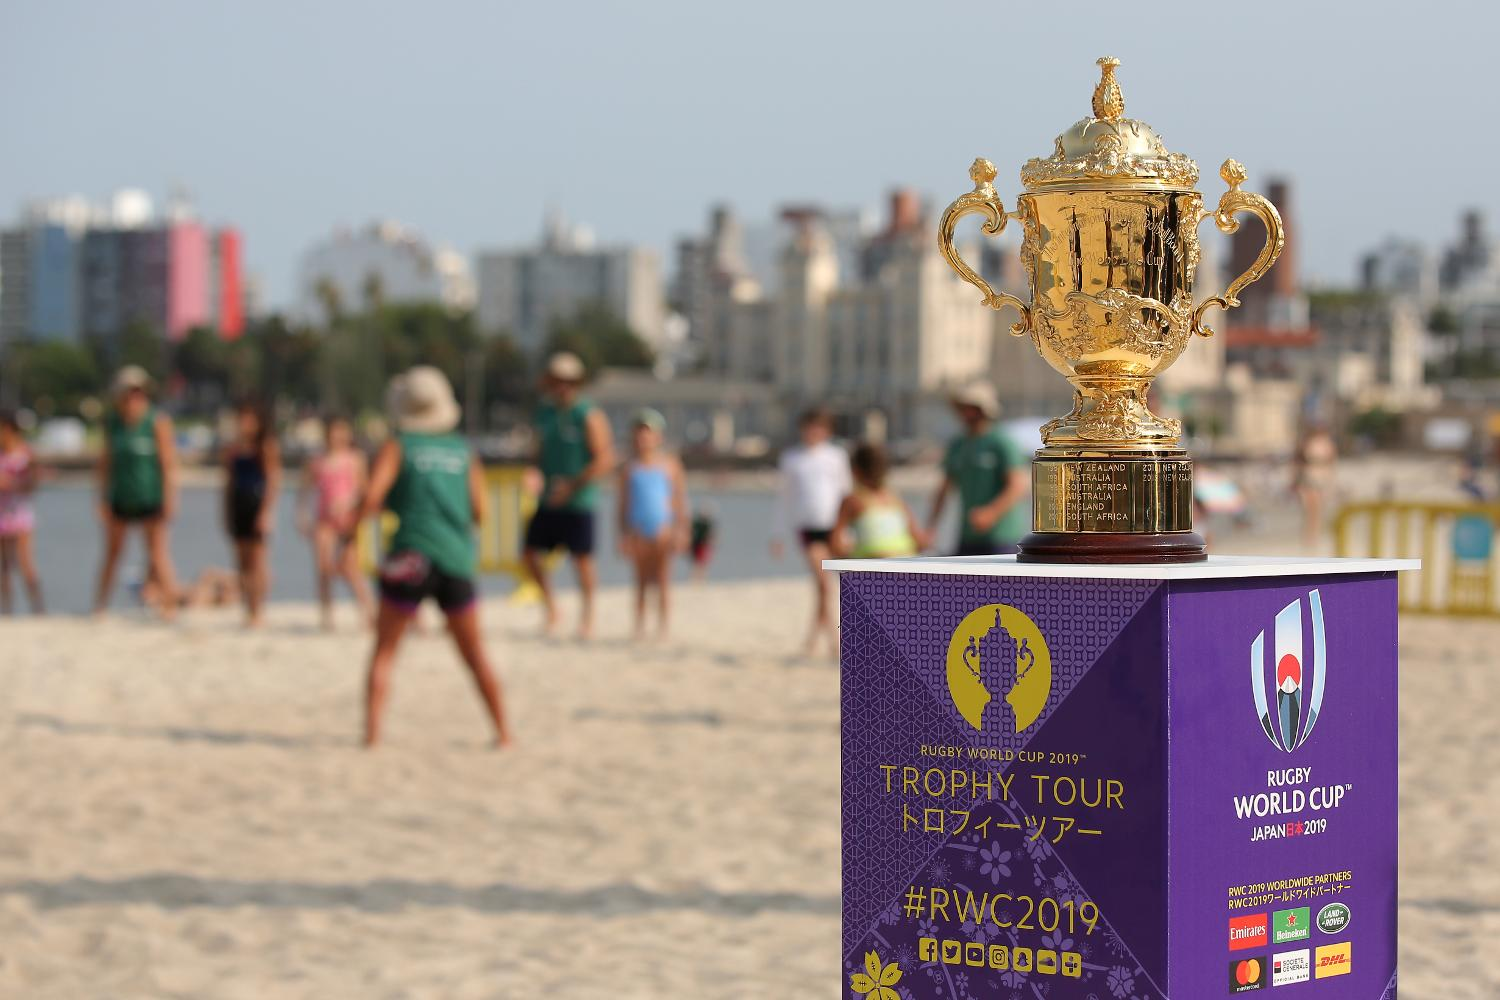 Rugby World Cup 2019 Trophy Tour - Montevideo